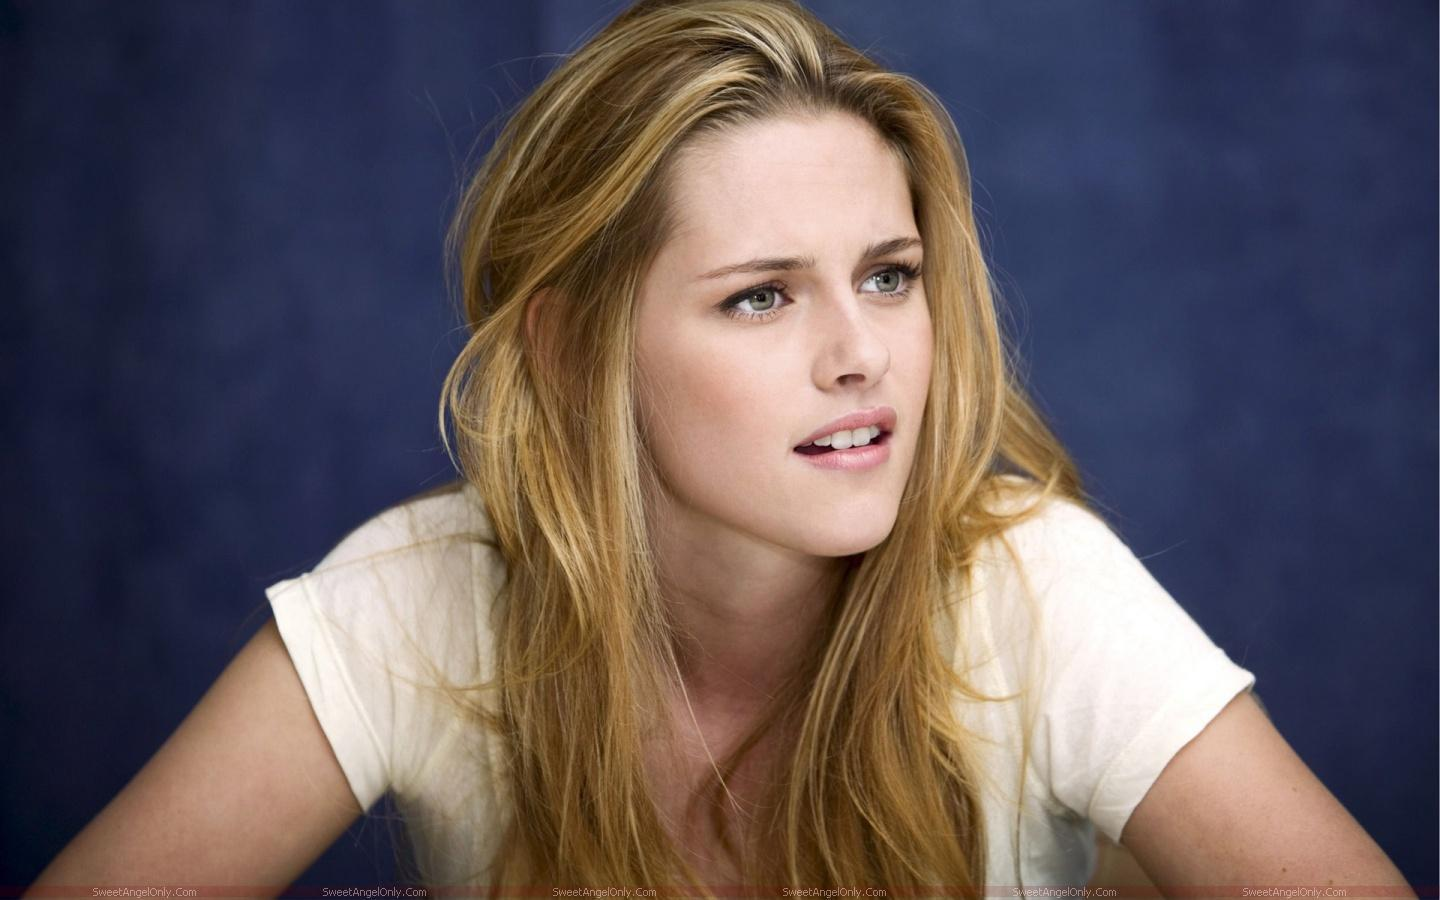 http://4.bp.blogspot.com/-YbMr02T4t1Y/TX4hus49PxI/AAAAAAAAFls/V9lUCktkeT0/s1600/kristen_stewart_hollywood_hot_actress_wallpaper_sweetangelonly_20.jpg